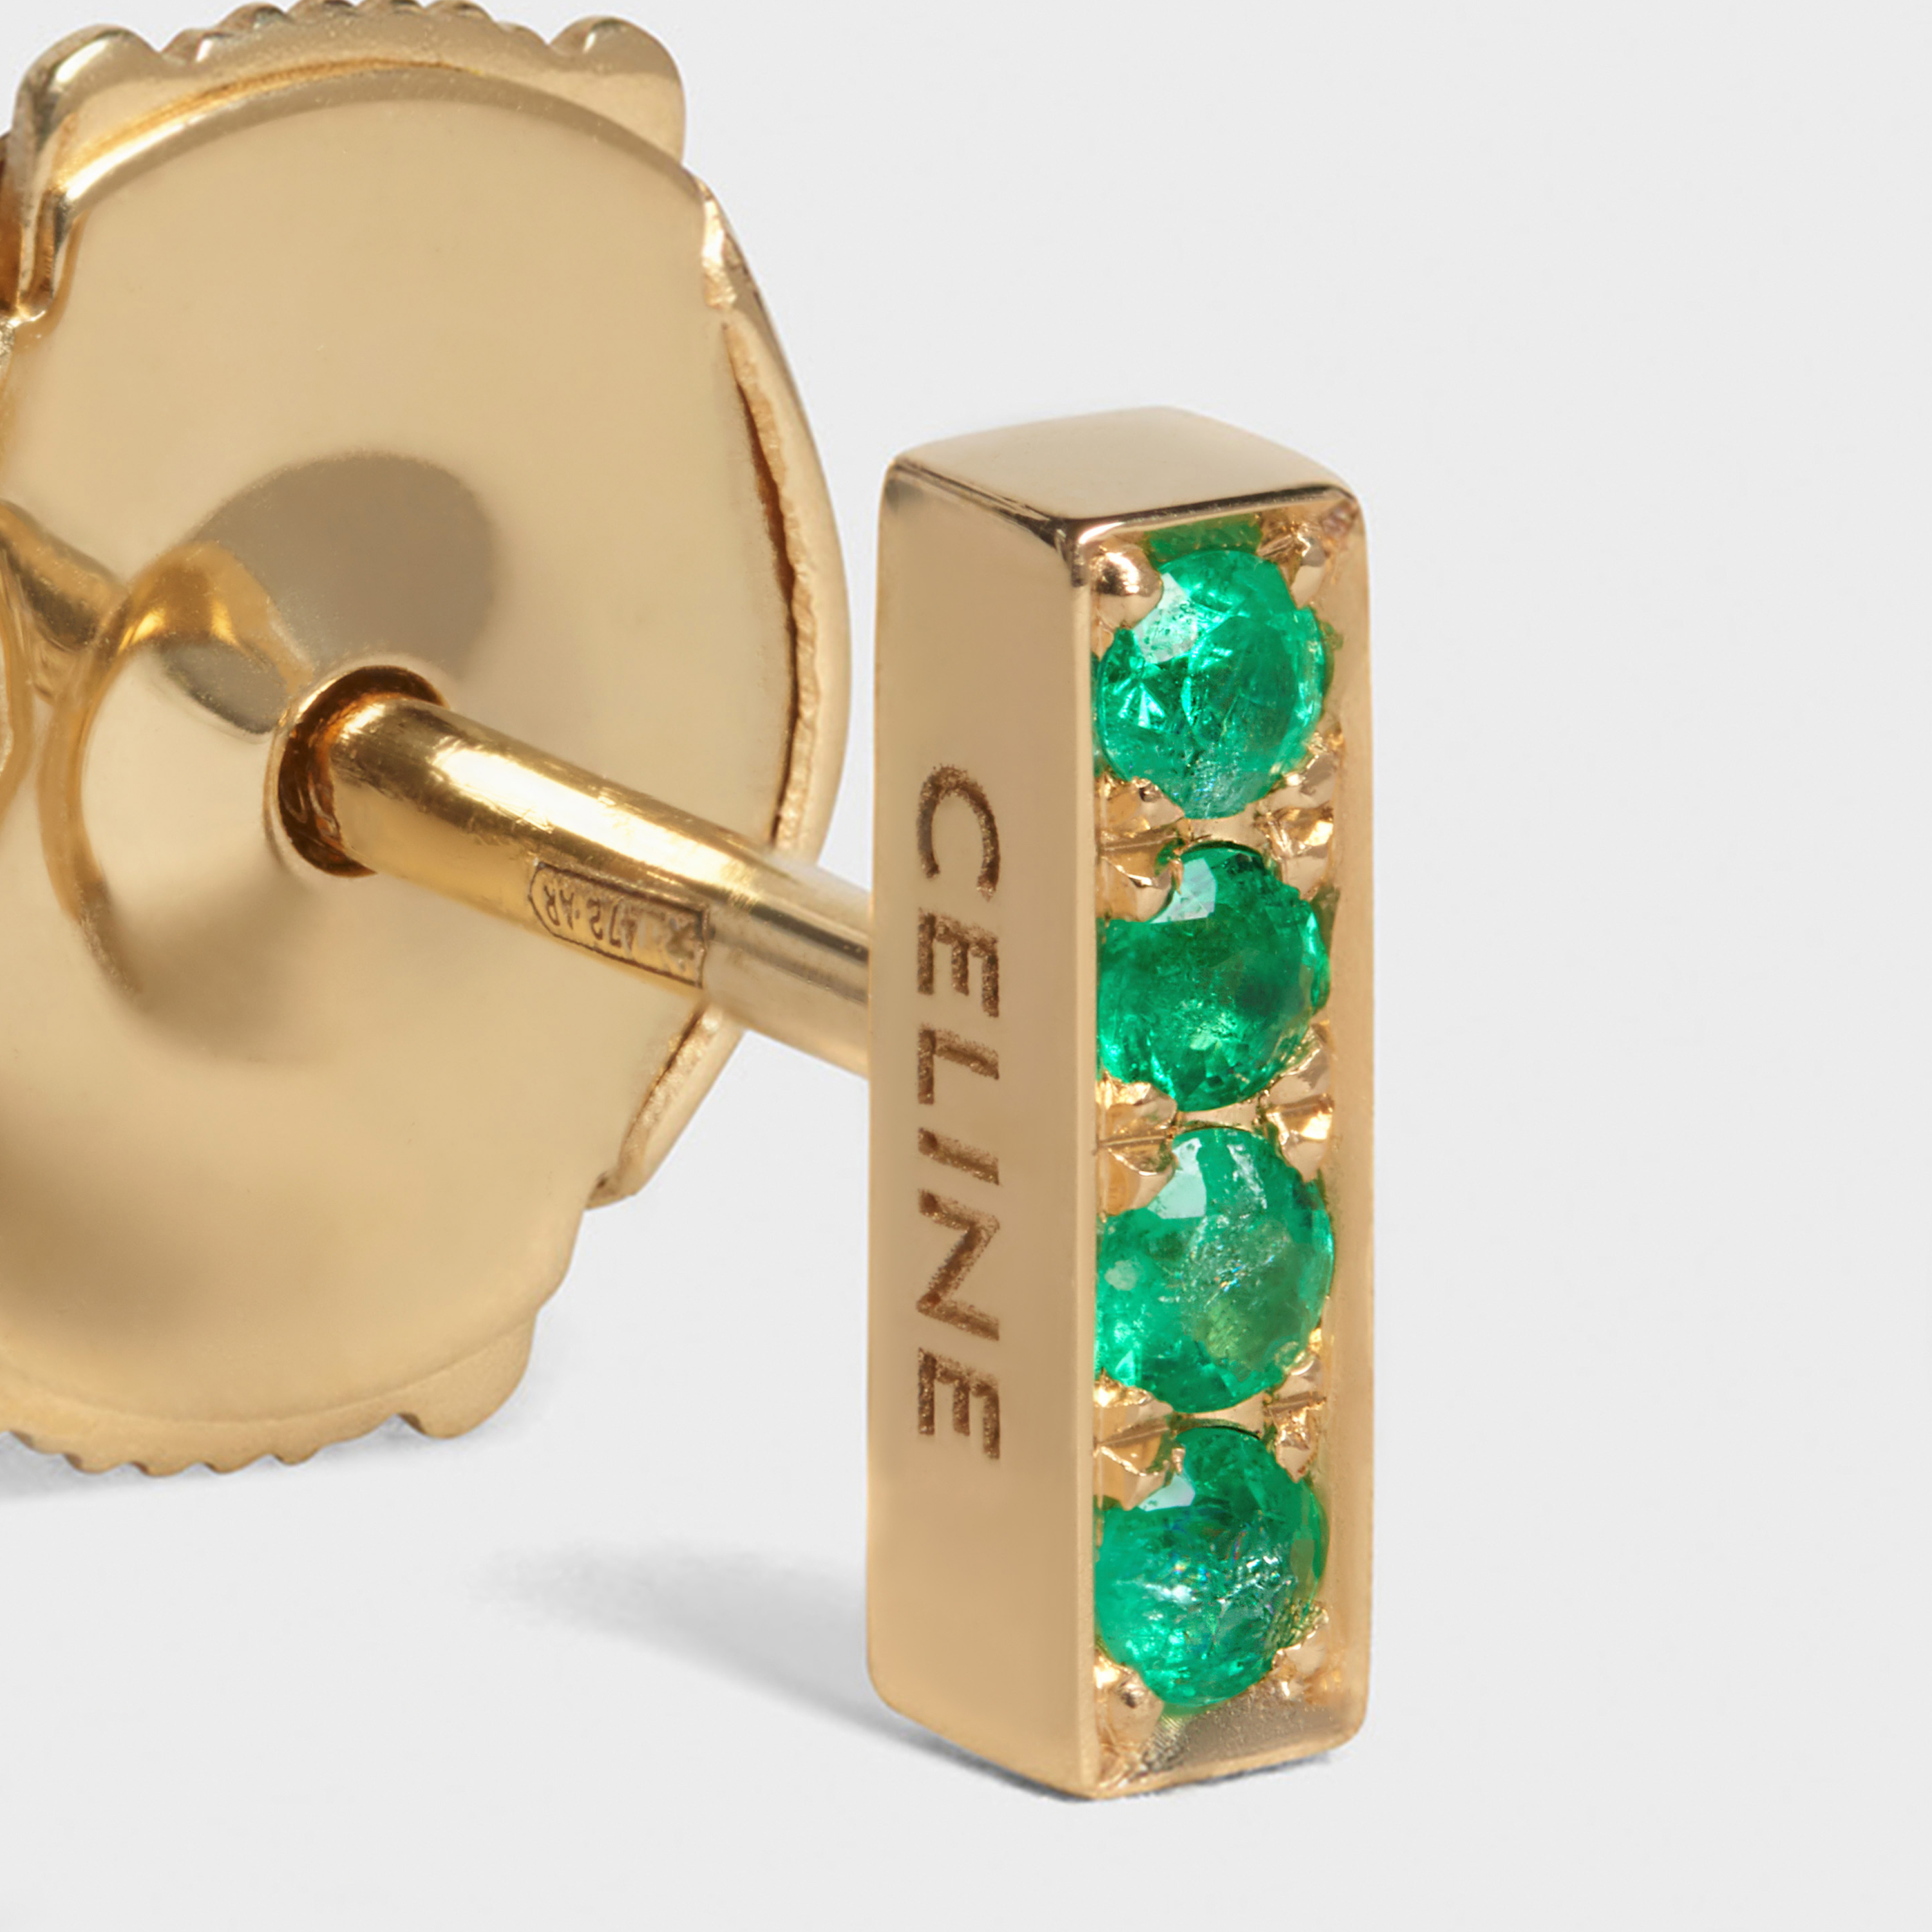 Celine Sentimental Small Line Stud in Yellow Gold and Emerald | CELINE